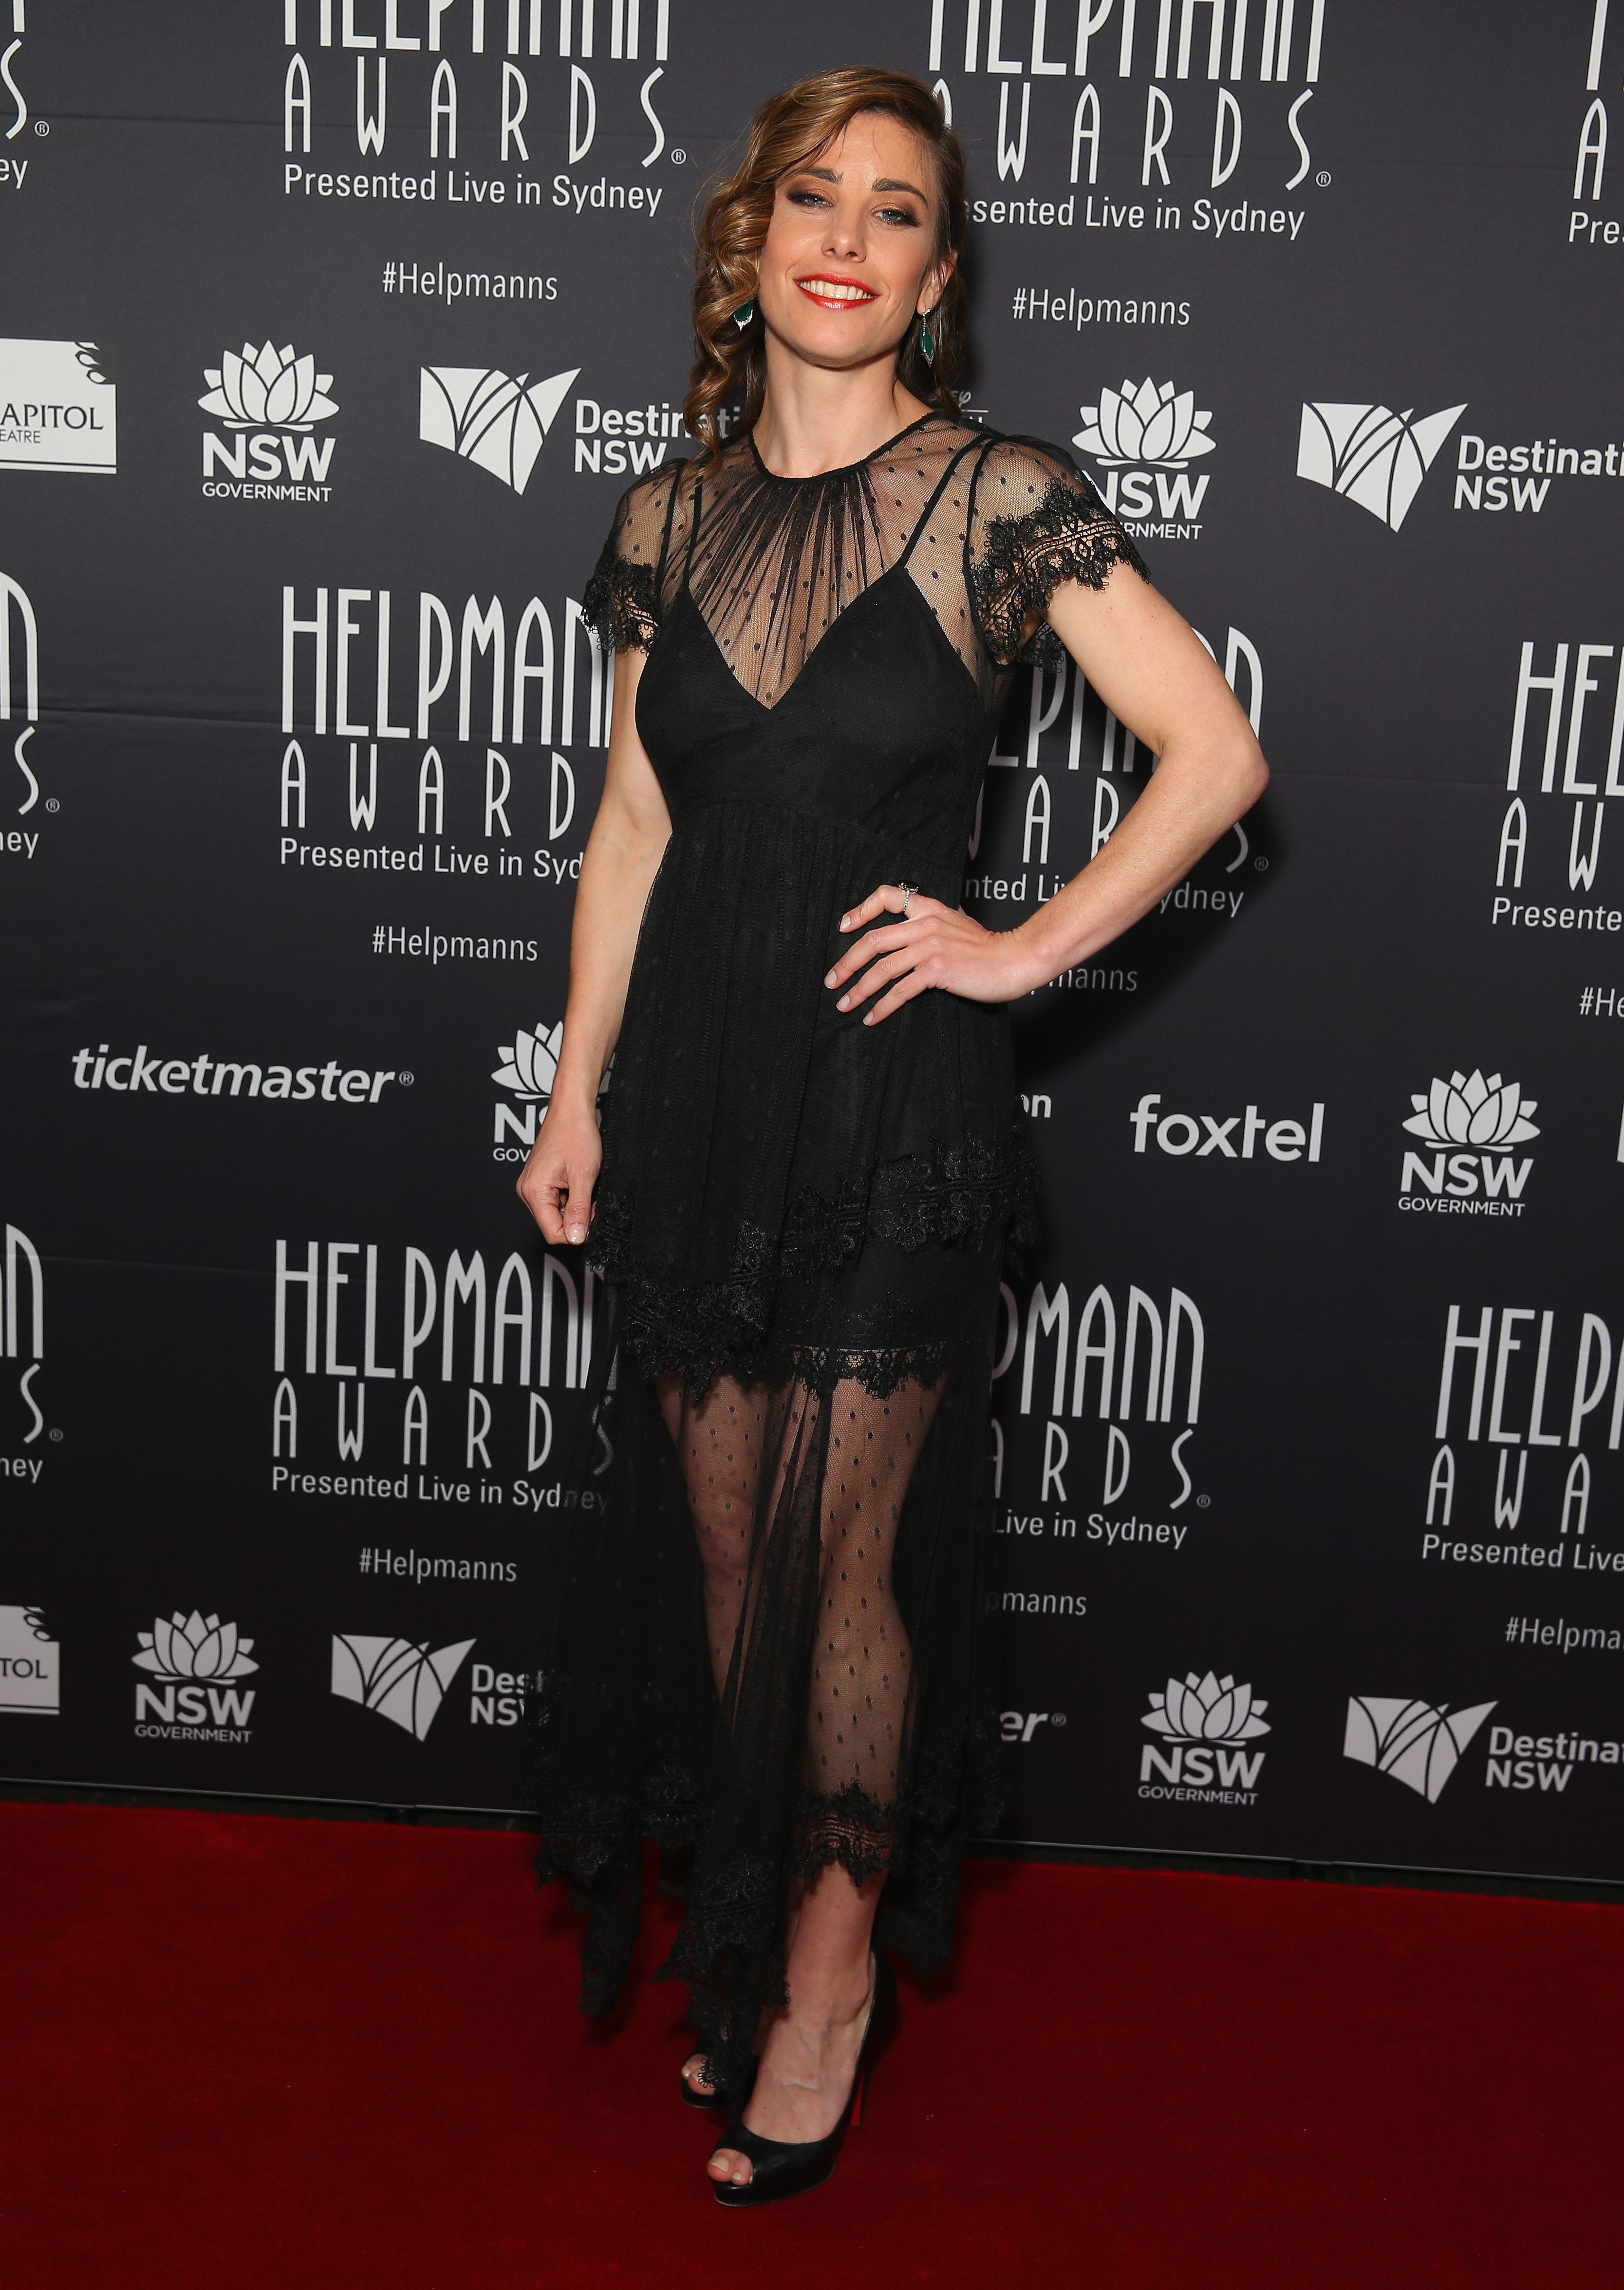 Classic Lines At The Helpmann Awards